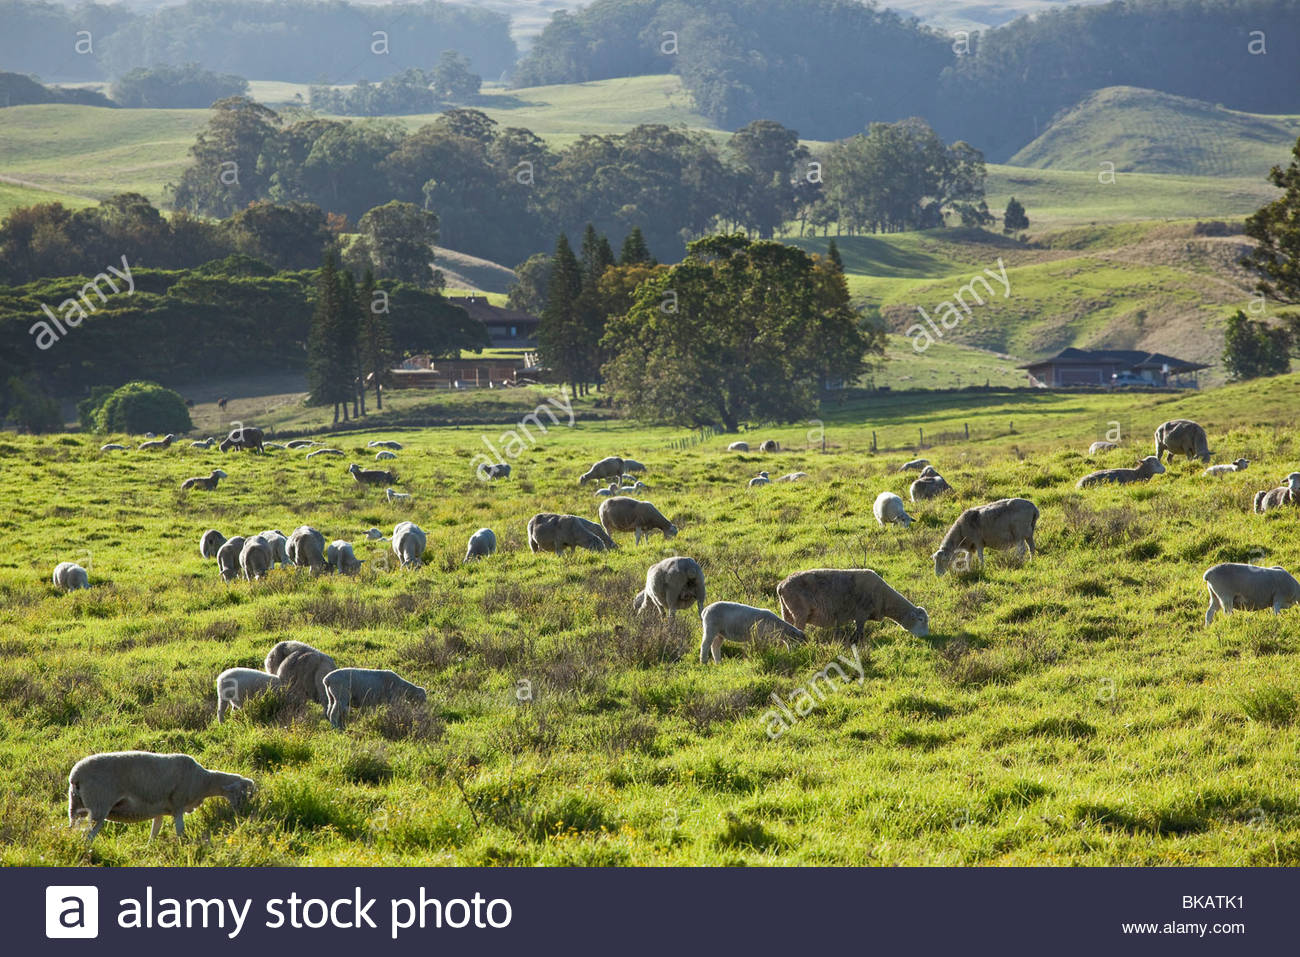 Sheep ranching upcountry on the island of Maui in the State of Hawaii USA Stock Photo